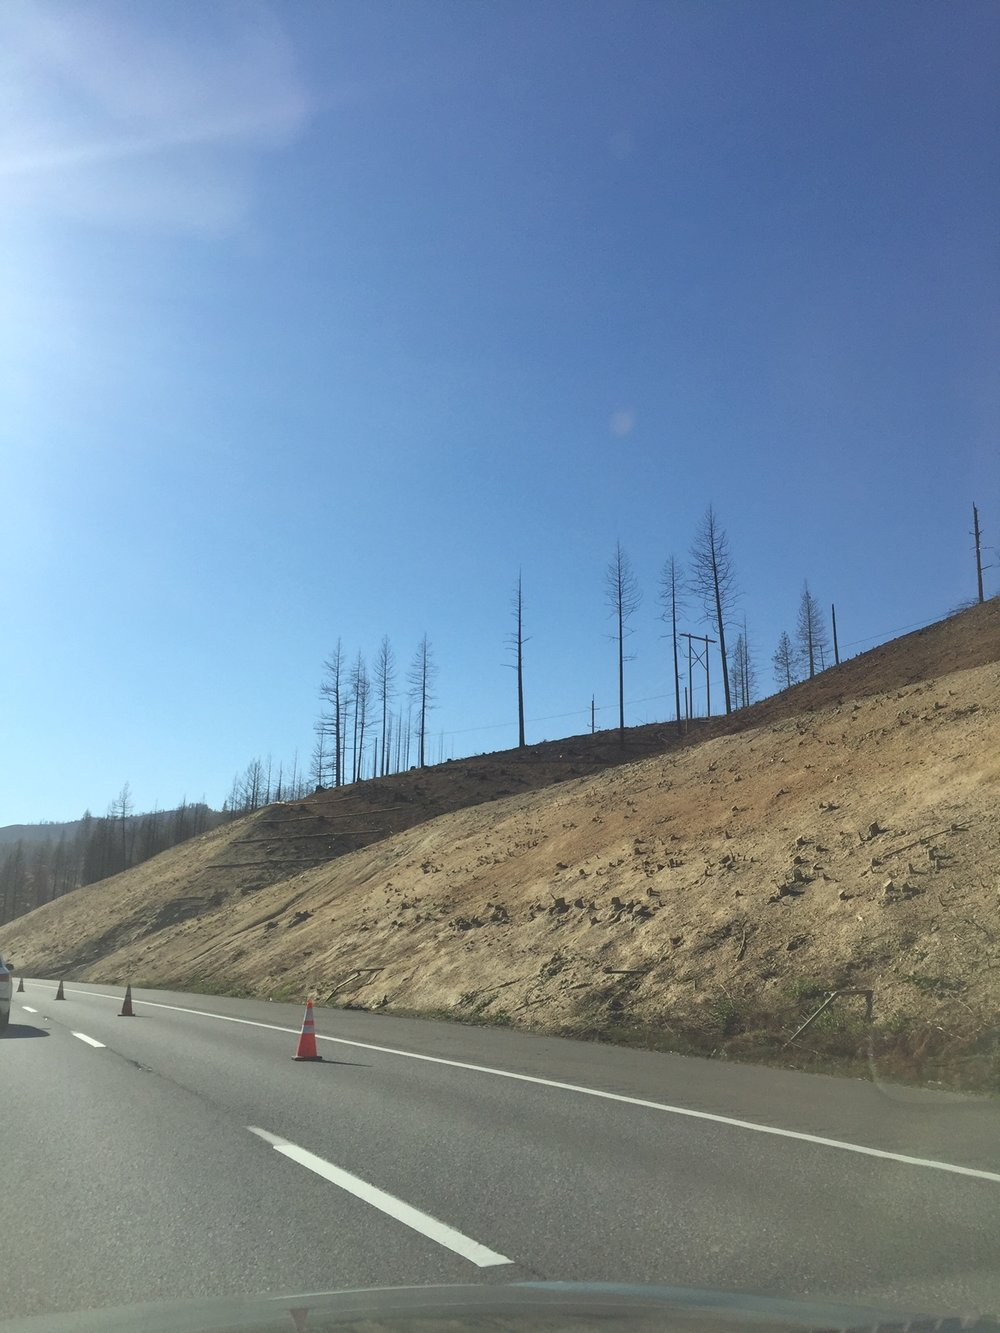 The hillside after the Delta Fire. They were still cutting trees and doing erosion control.